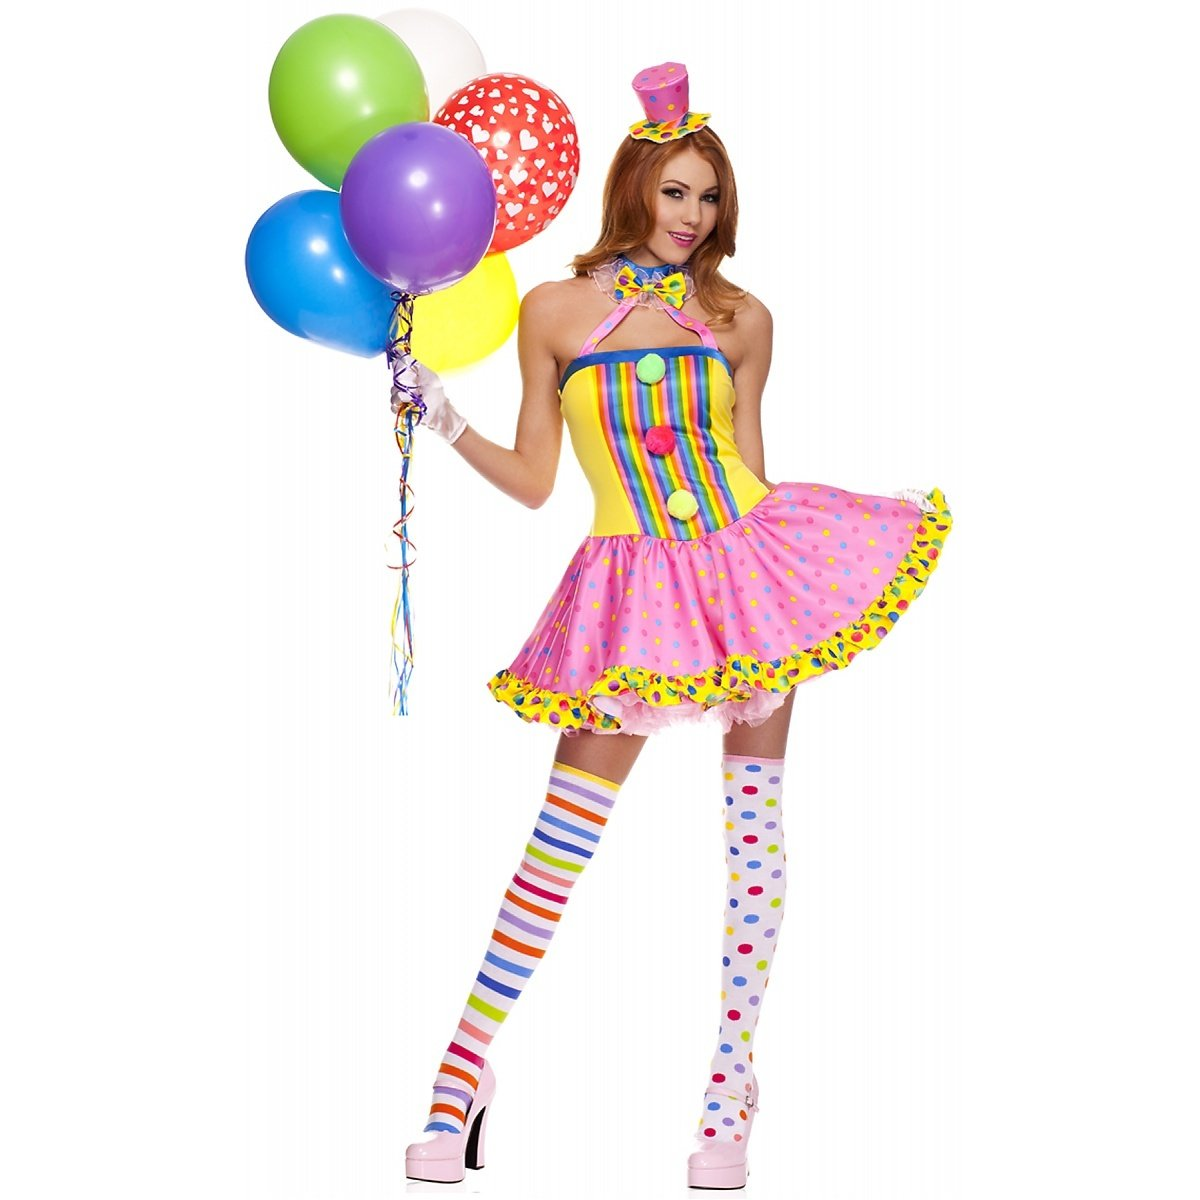 fee762fe06c The sexy clown Halloween costume comes in adult sizes Medium Large